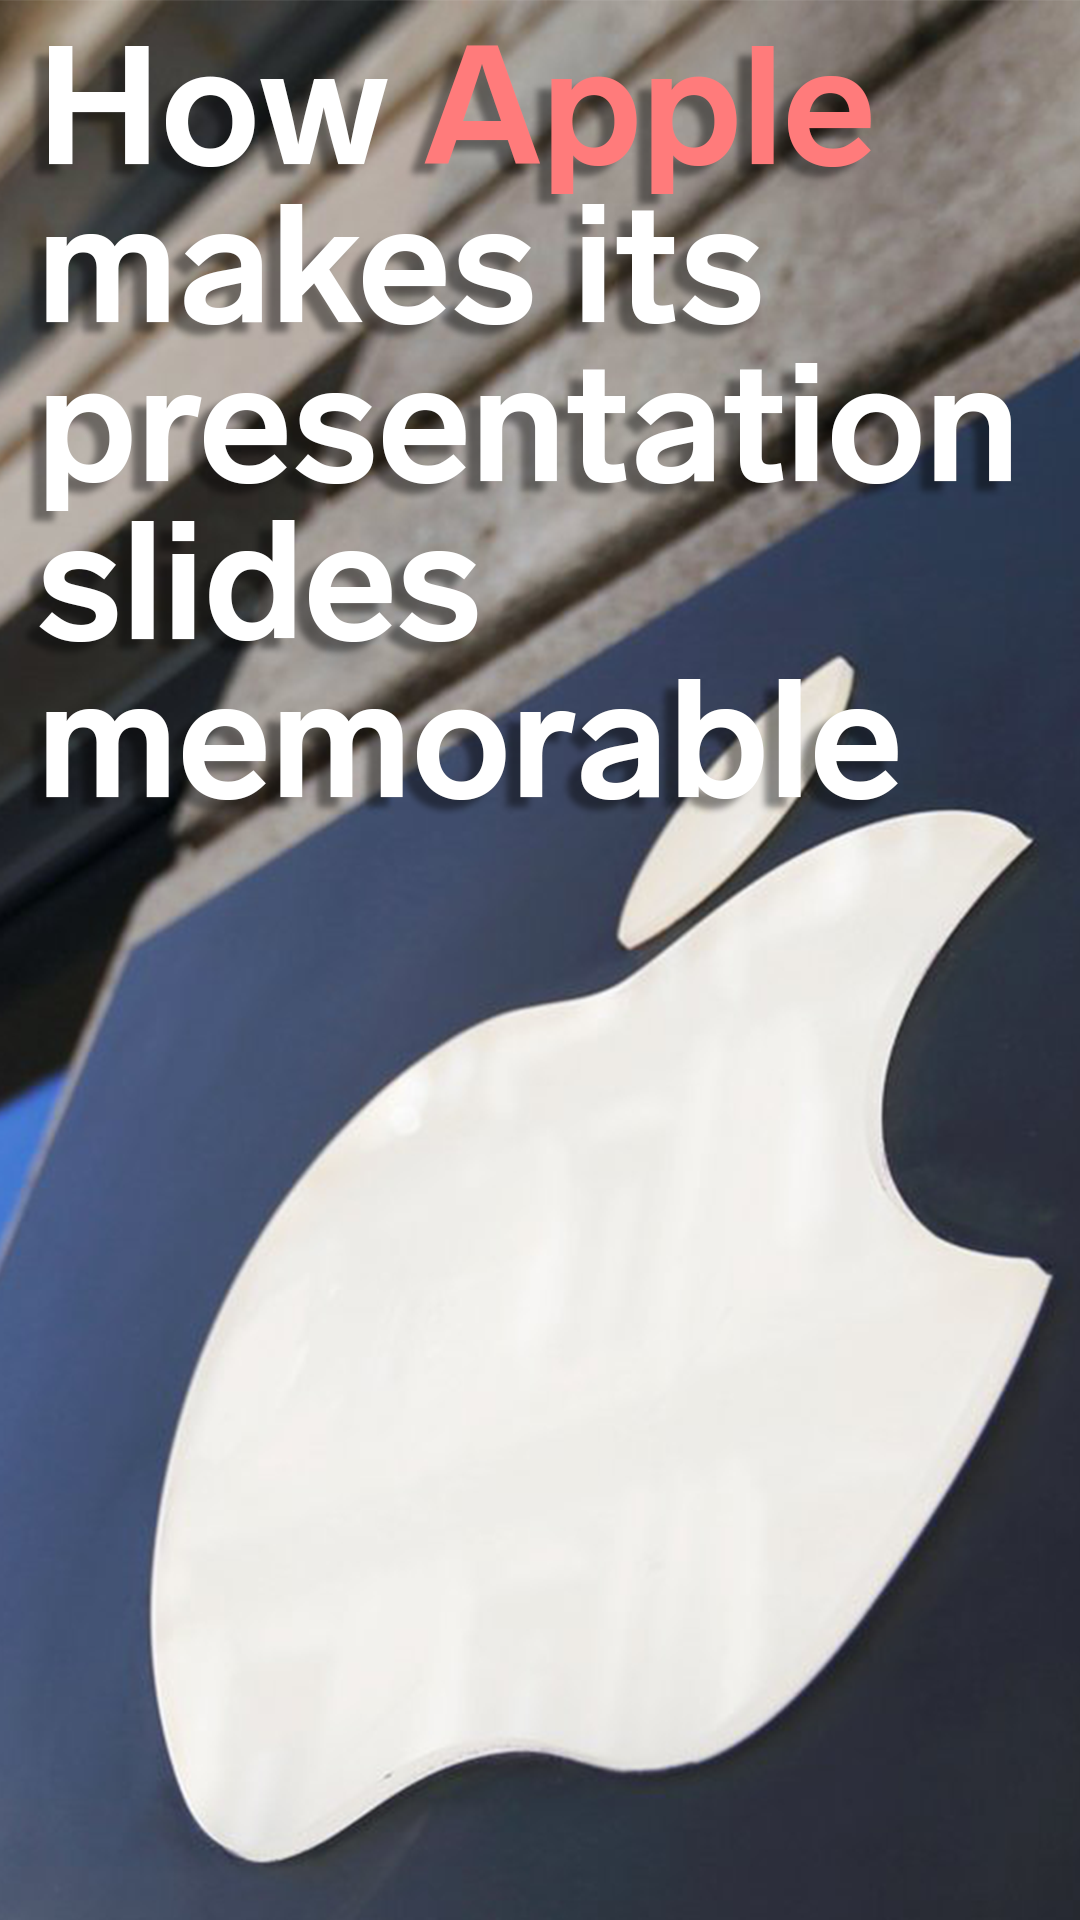 Tim Cook And Apple Leaders Use This Clever Presentation Hack Borrowed From Steve Jobs To Make Slides Memorable How To Memorize Things Presentation Steve Jobs